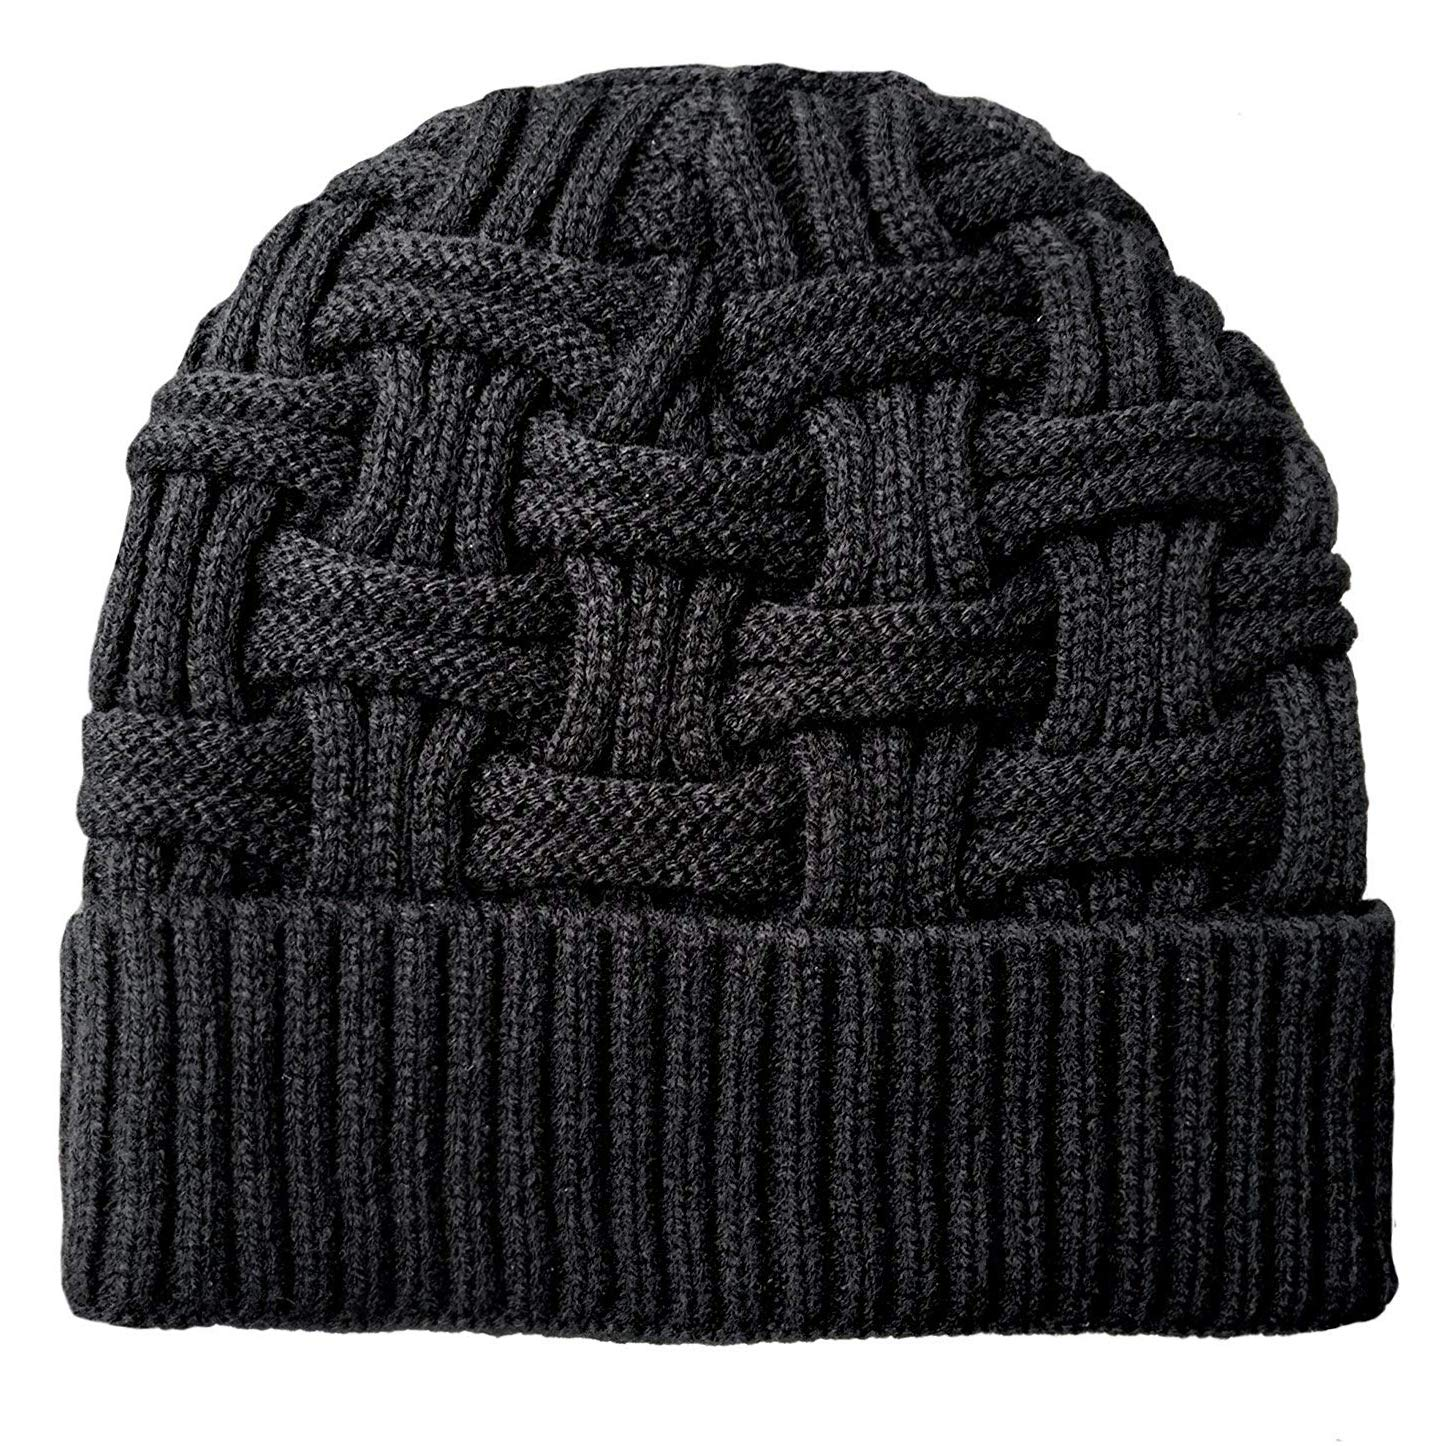 ad02d853 Loritta Mens Winter Warm Knitting Hats Wool Baggy Slouchy Beanie Hat Skull  Cap at Amazon Men's Clothing store: